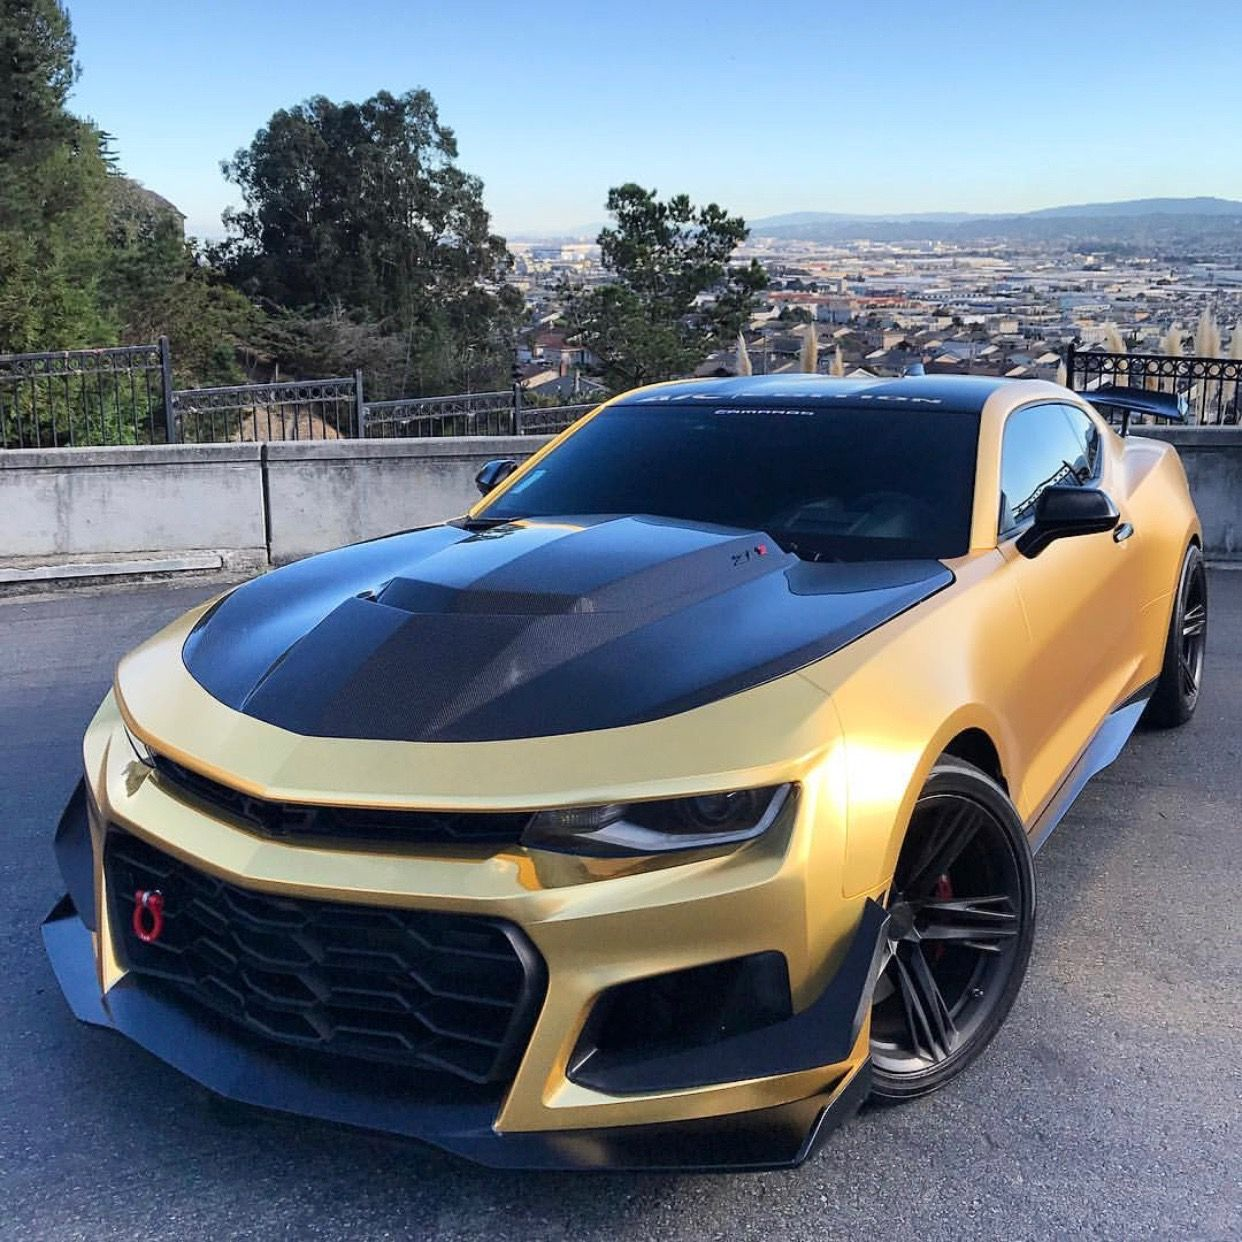 Chevrolet Camaro Zl1 1le Painted In Summit White And Wrapped In